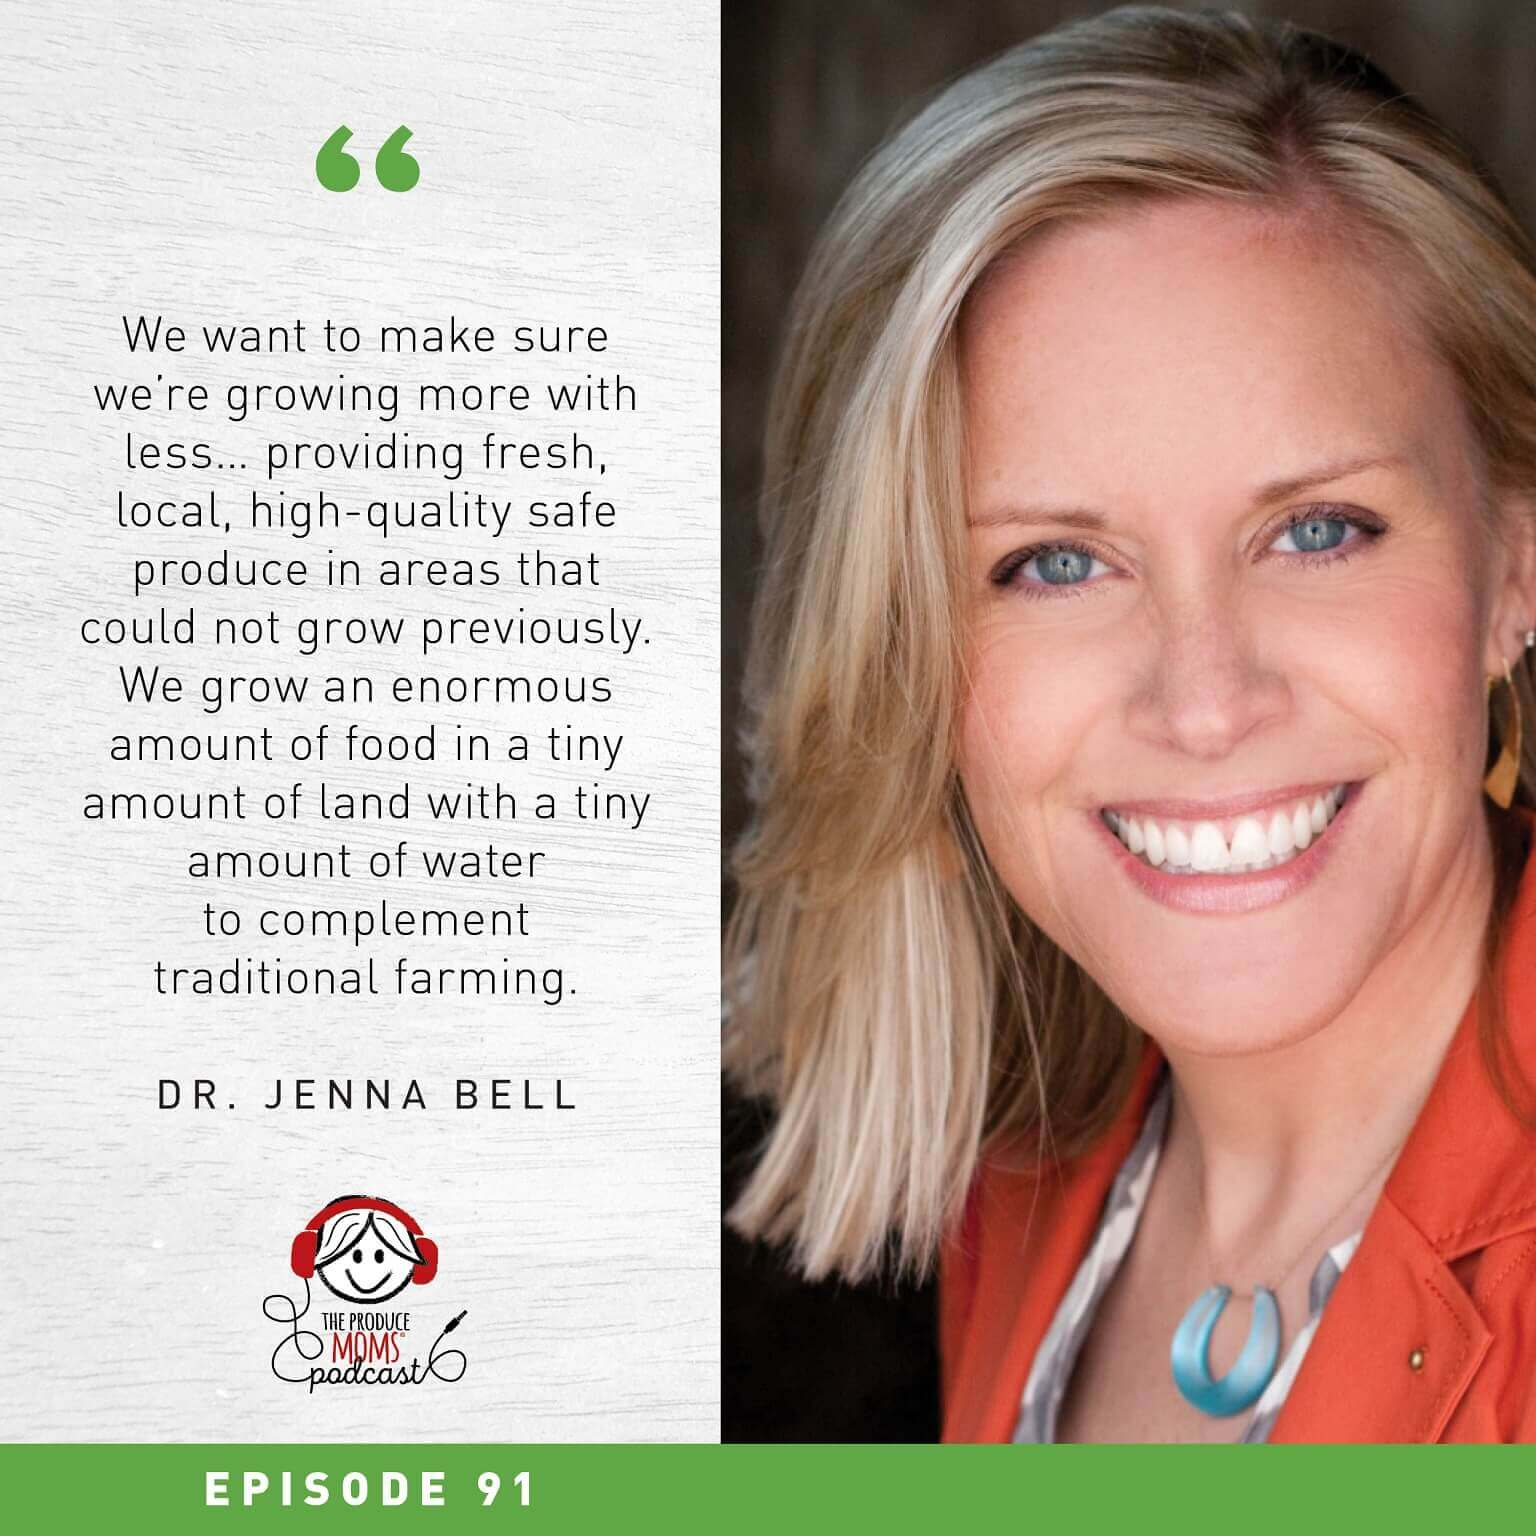 Dr. Jenna Bell photo and quote